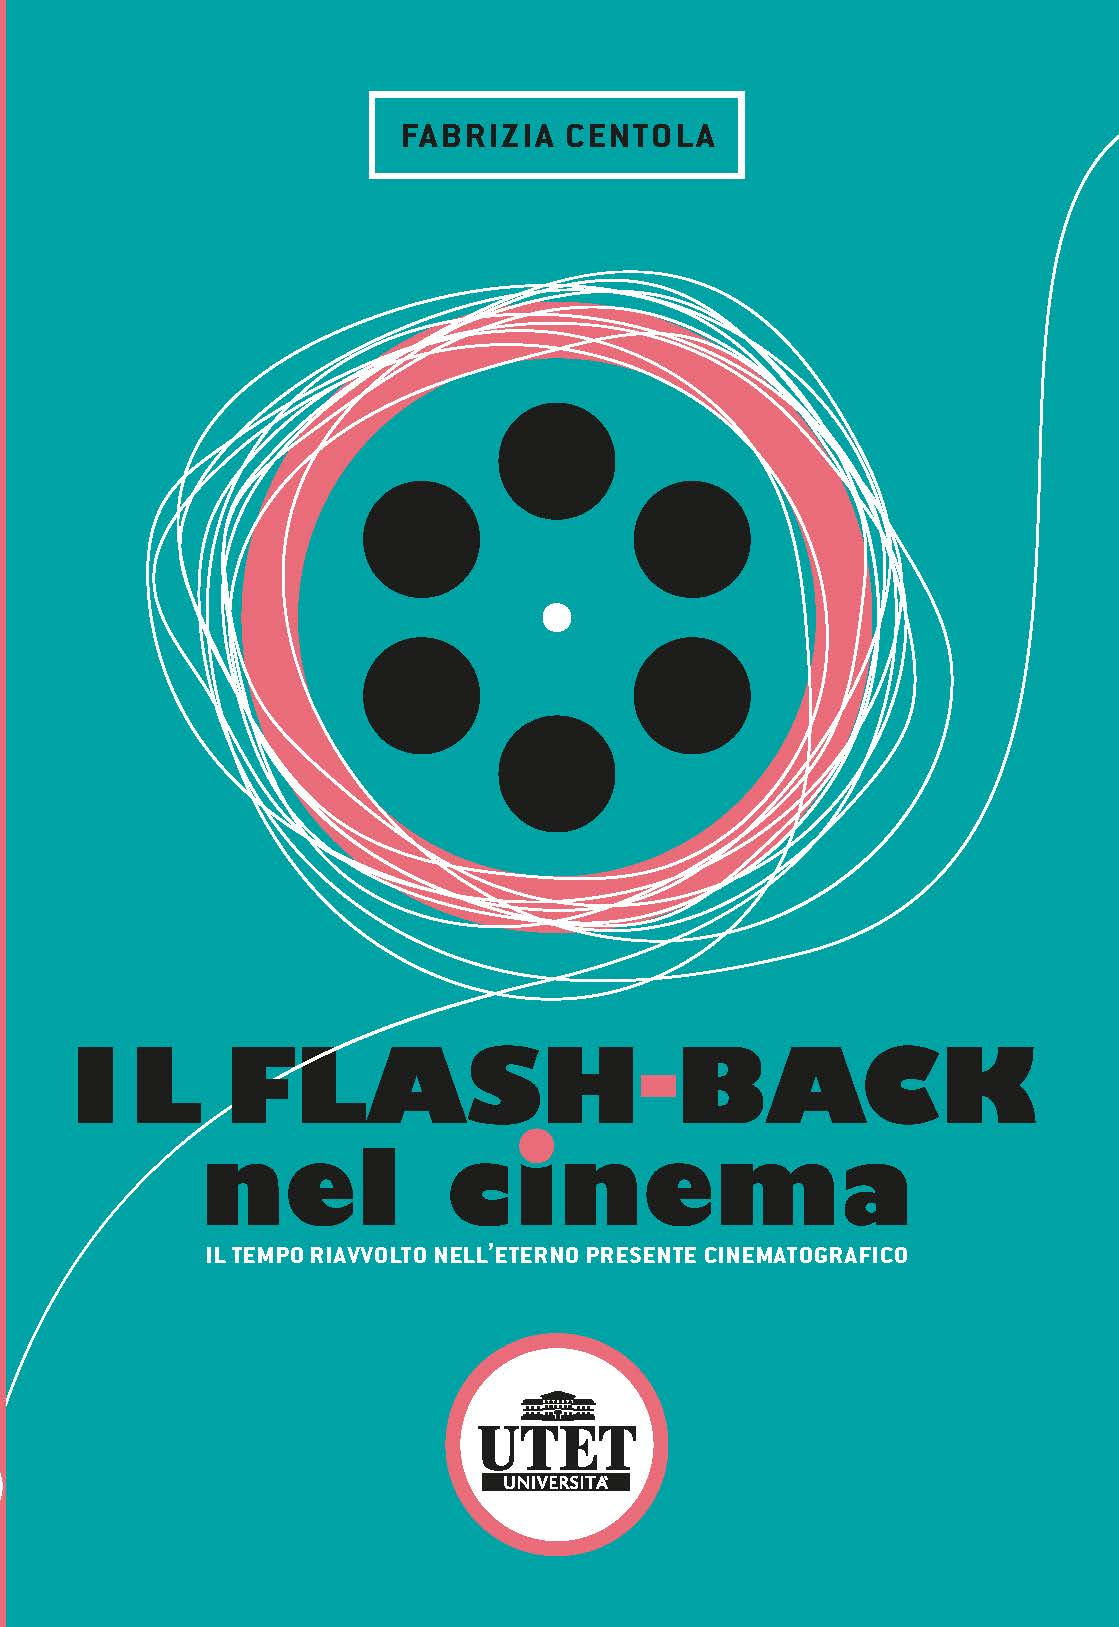 Il flash-back nel cinema